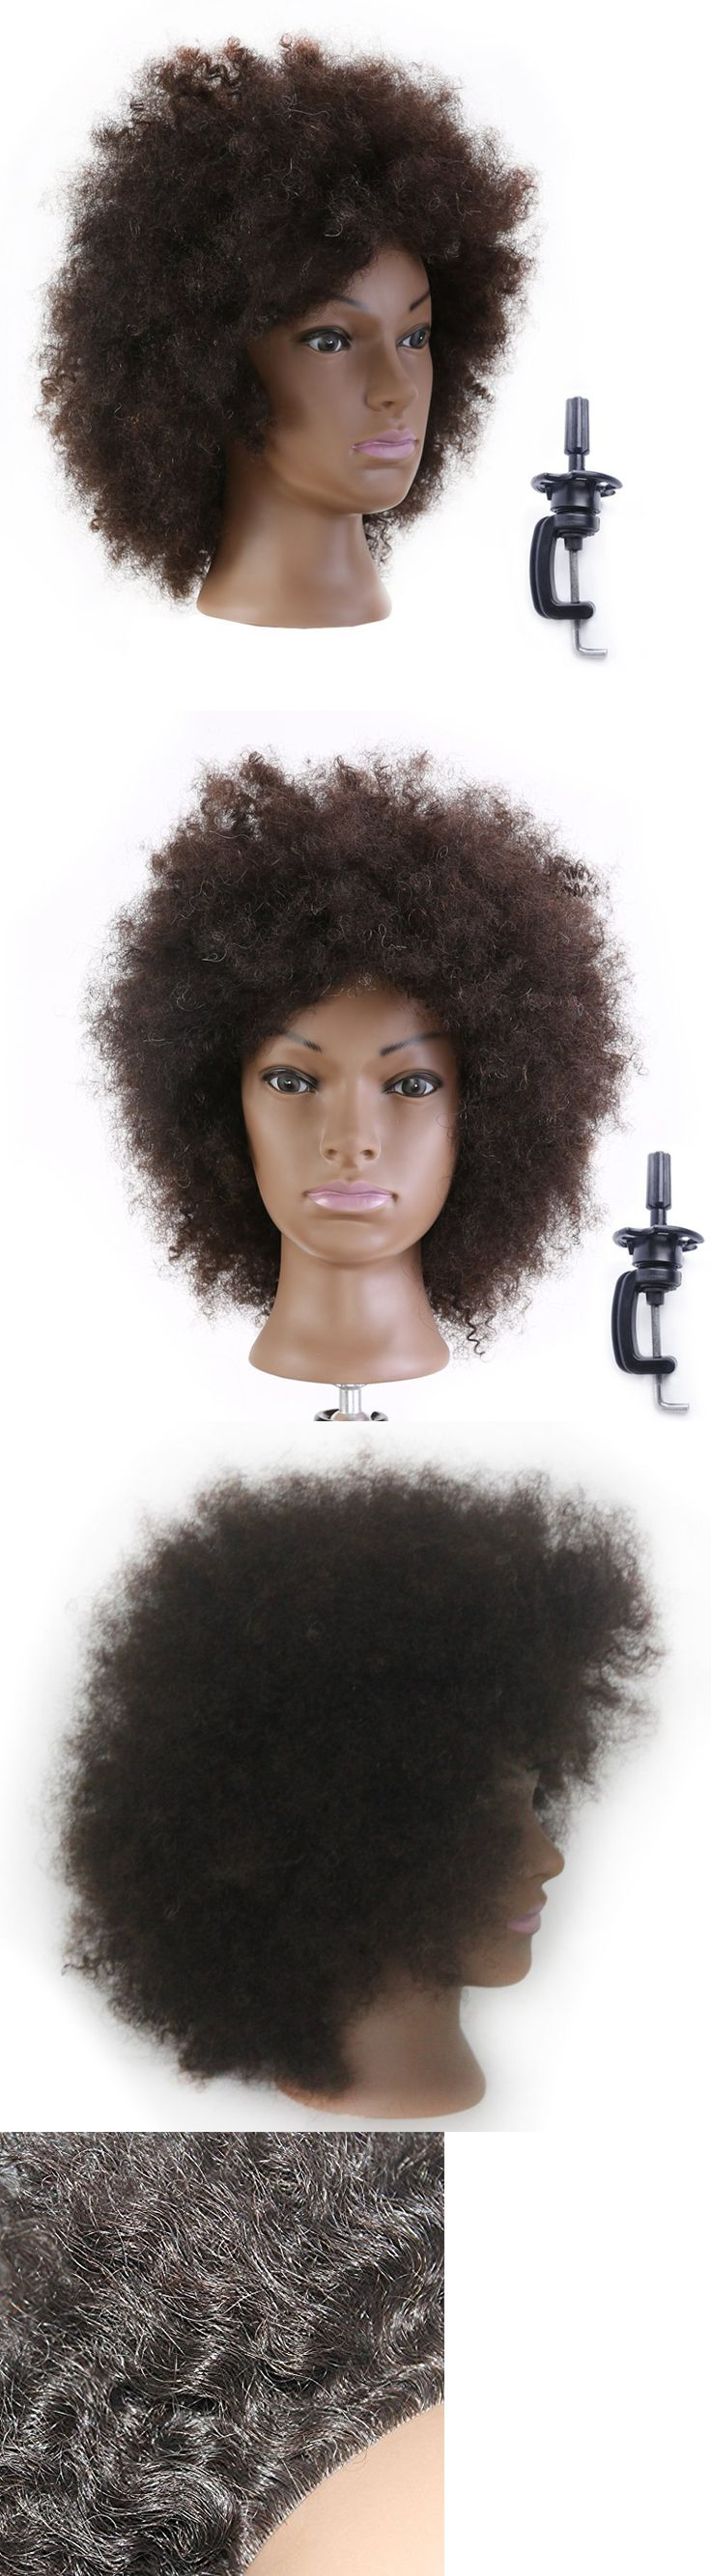 Hair and Makeup Mannequins: New 100% Human Hair Afro Hairdresser Training Head Manikin Cosmetology Mannequin -> BUY IT NOW ONLY: $44.5 on eBay!